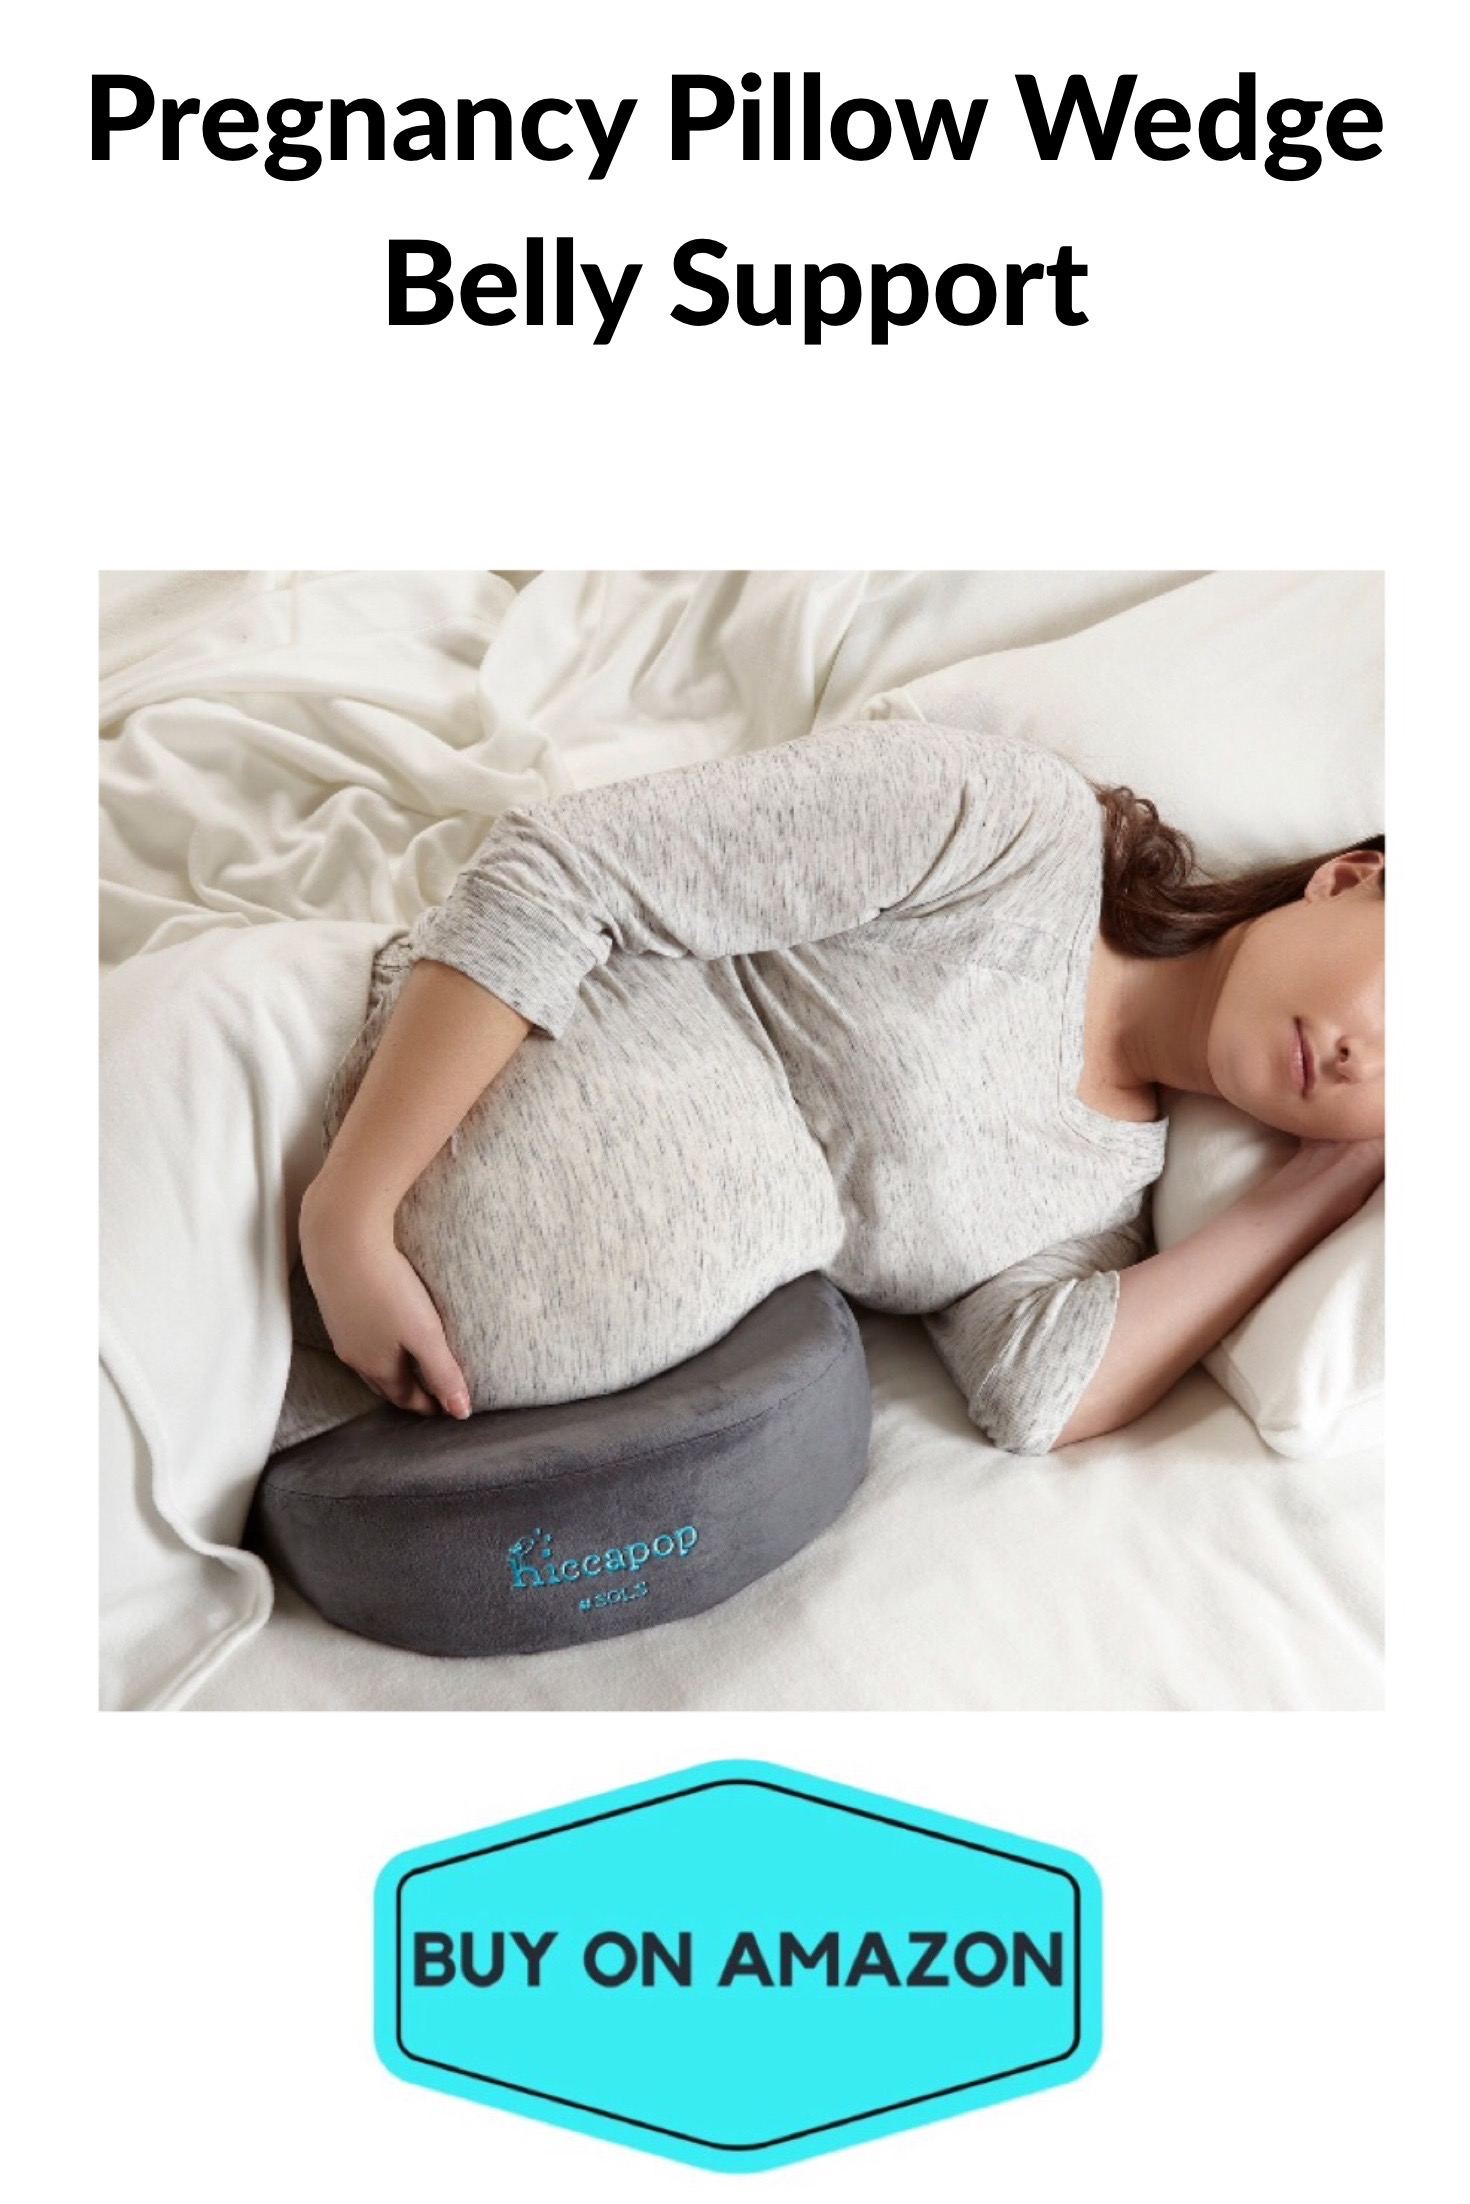 Pregnancy Pillow Wedge Belly Support